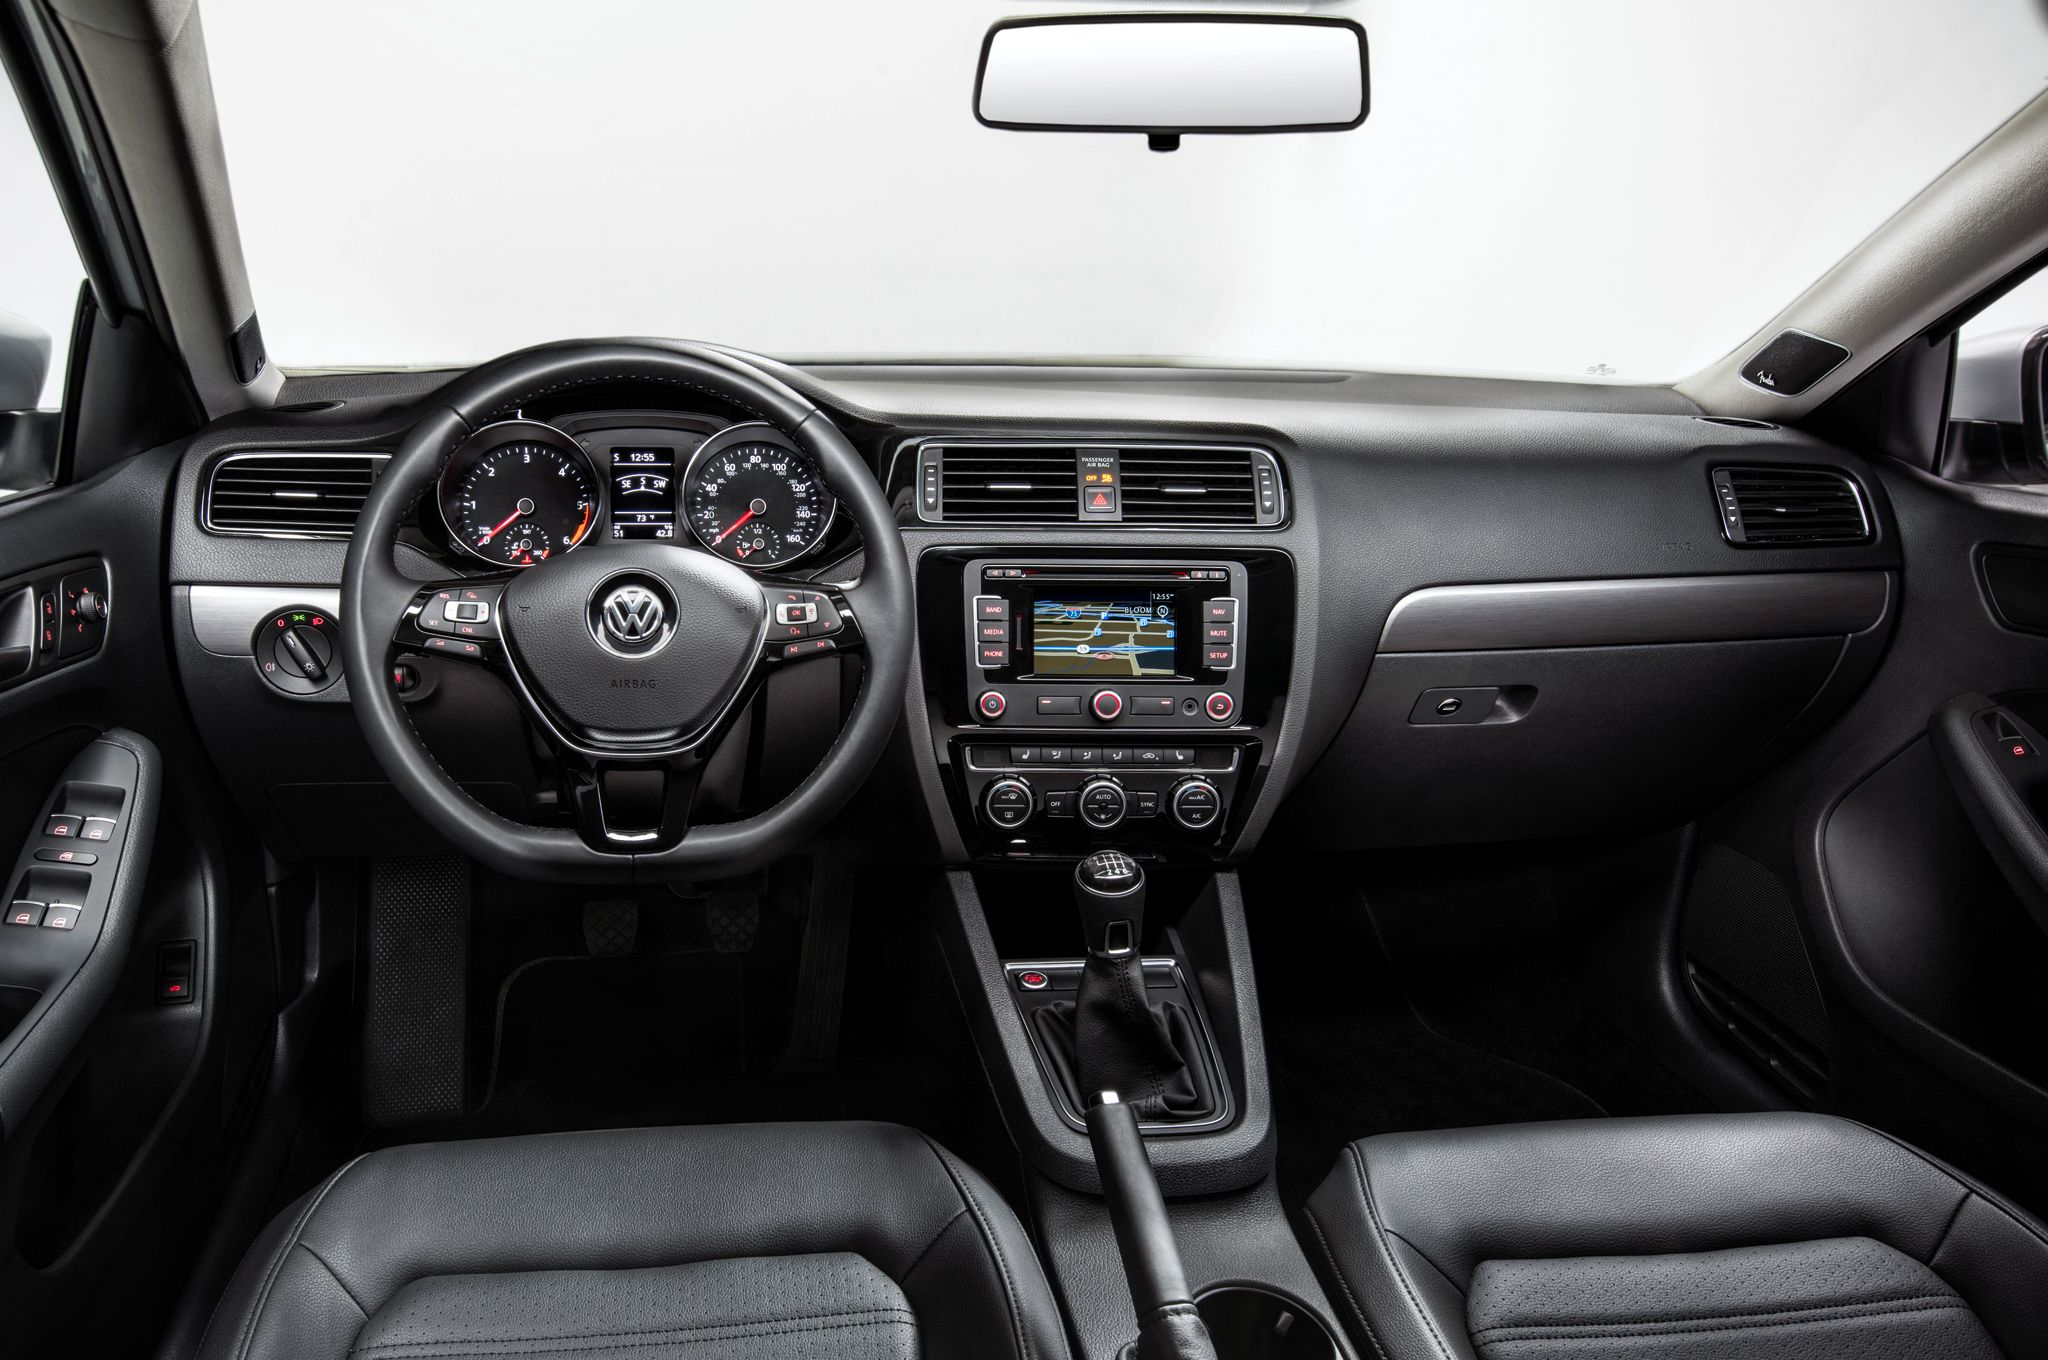 New release volkswagen jetta 2015 review interior view model